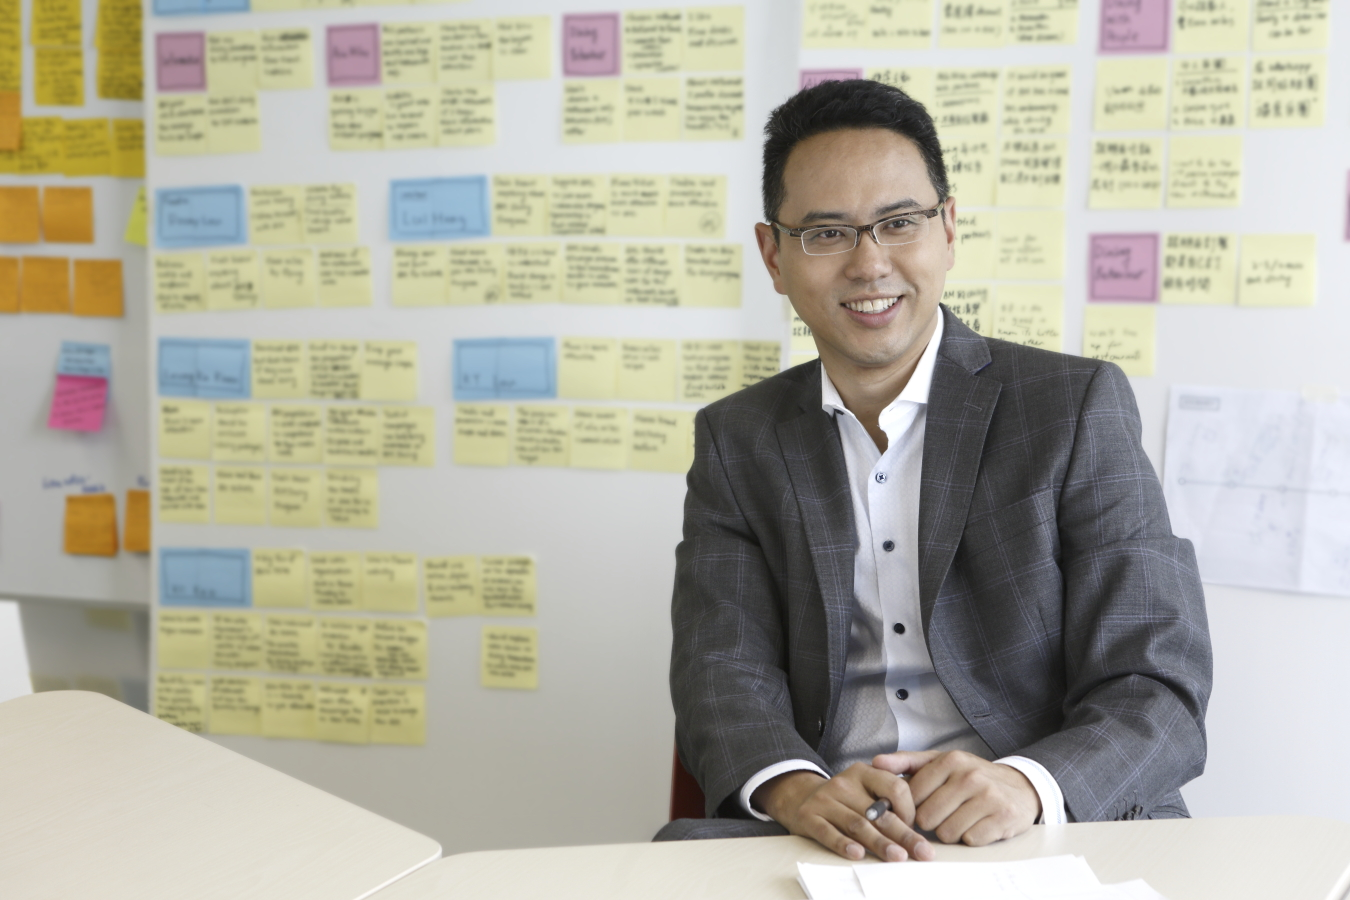 Stephen Wong is the CEO of Asia Miles, the rewards program subsidiary of Cathay Pacific Airlines, and the co-founder of Design Thinking in Action, a Hong Kong-based workshop series promoting design thinking in Asia.